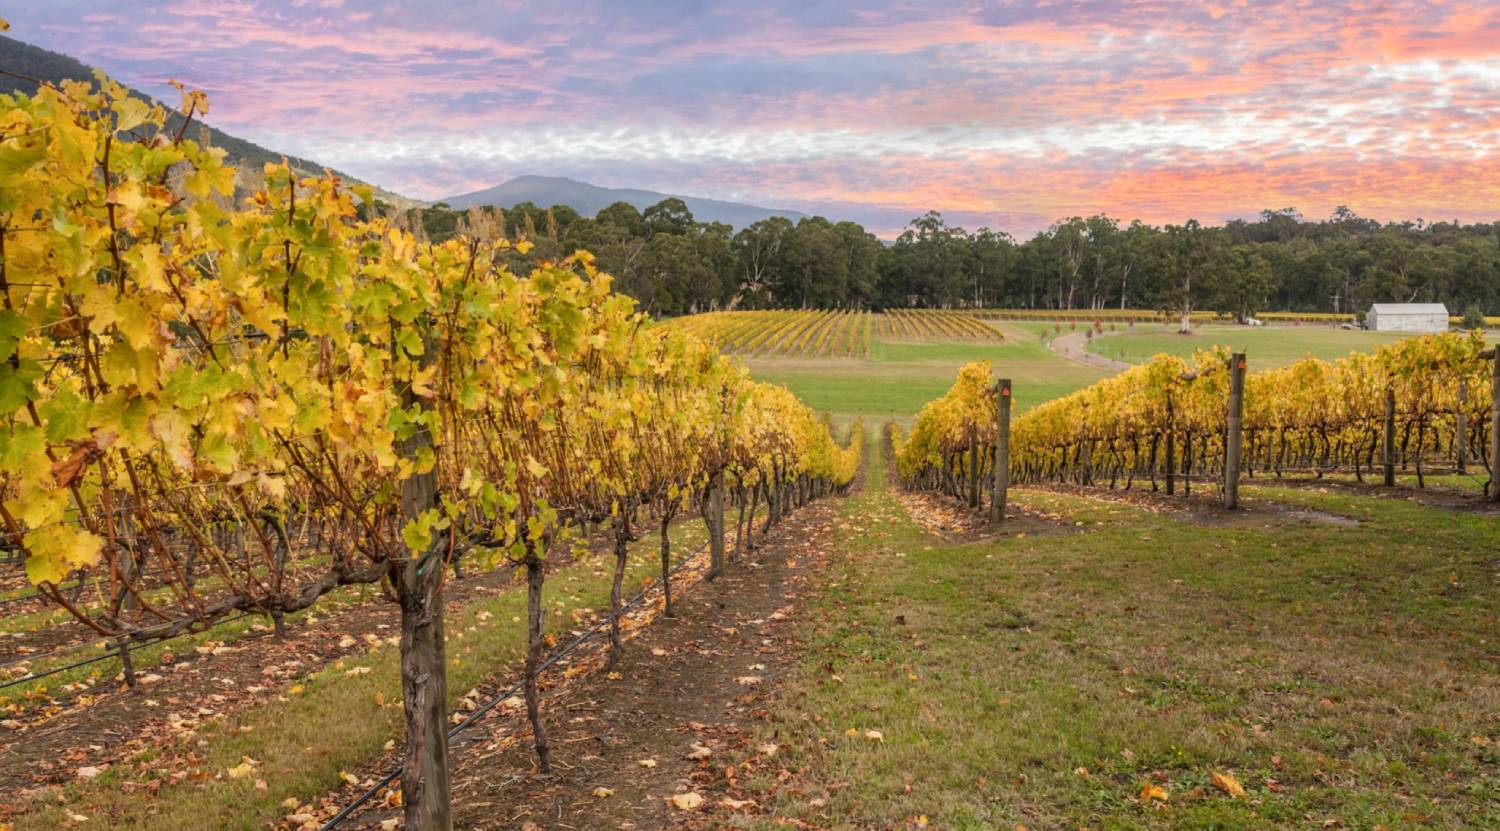 Yarra Valley - The Best Places To Visit In Australia